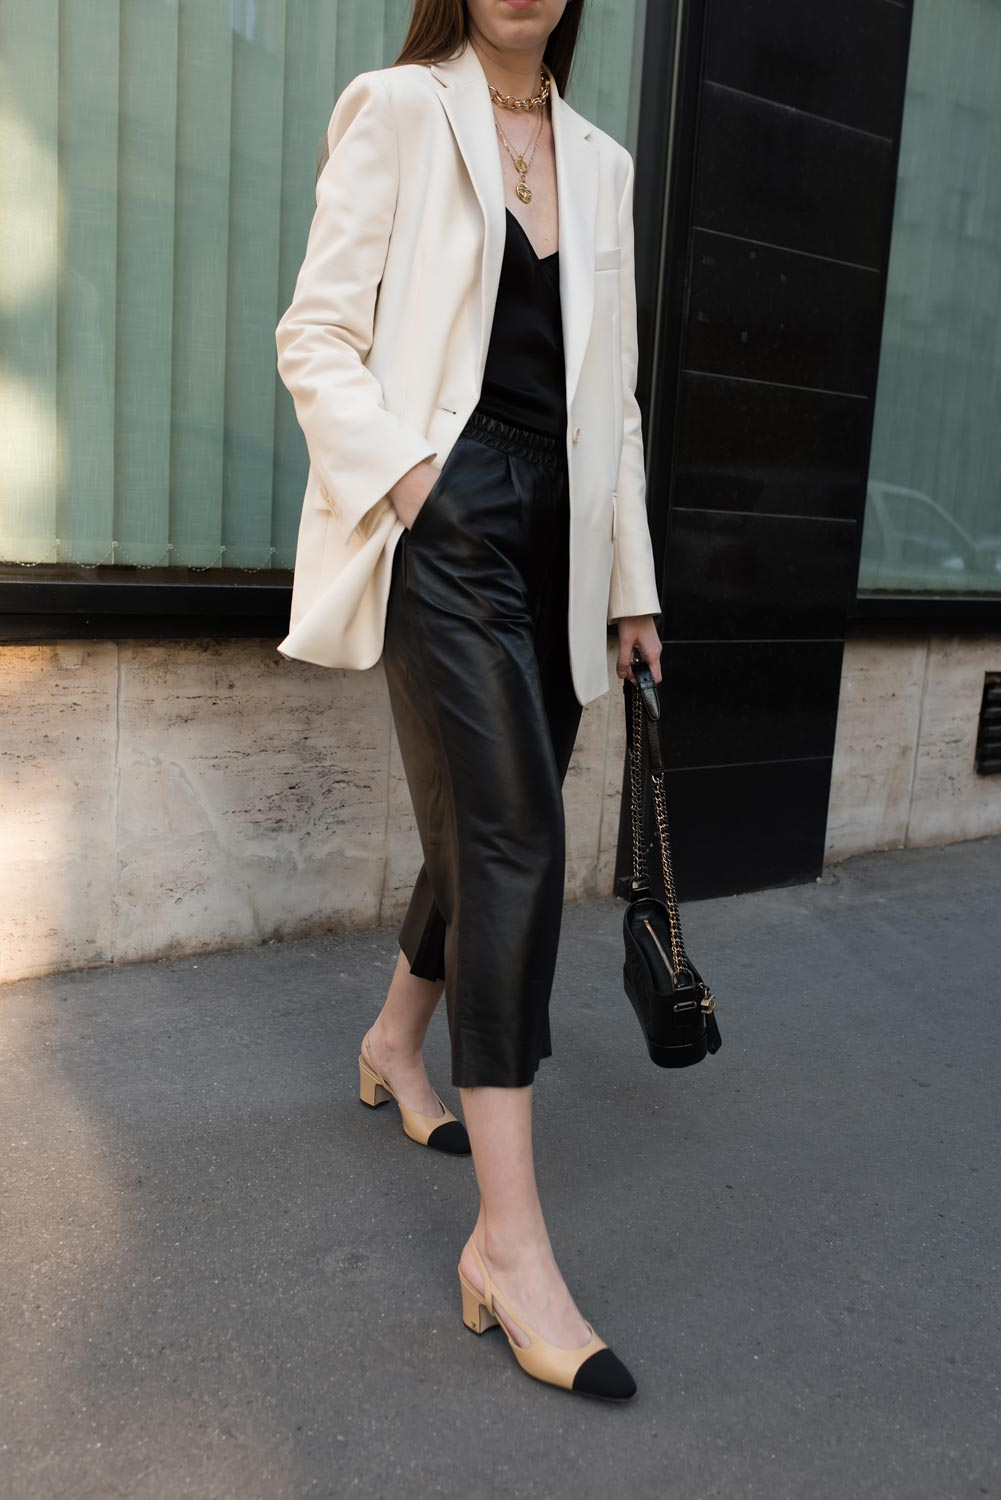 Steal Her Style: Leather Crush | The Daily Dose